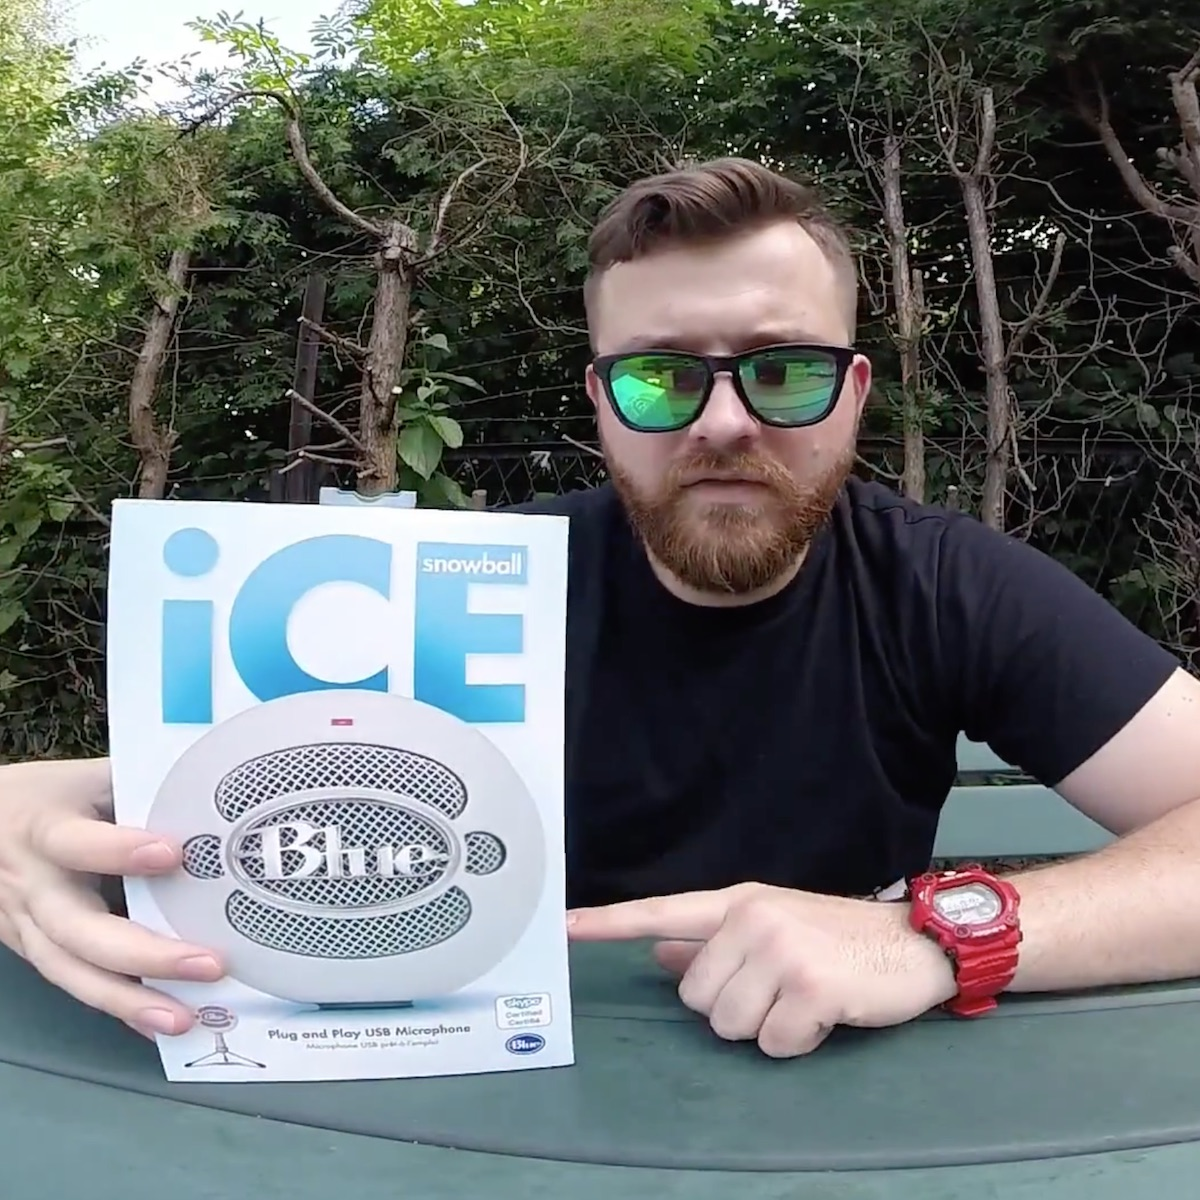 [VIDEO] Unboxing mikrofonu BLUE Snowball ICE